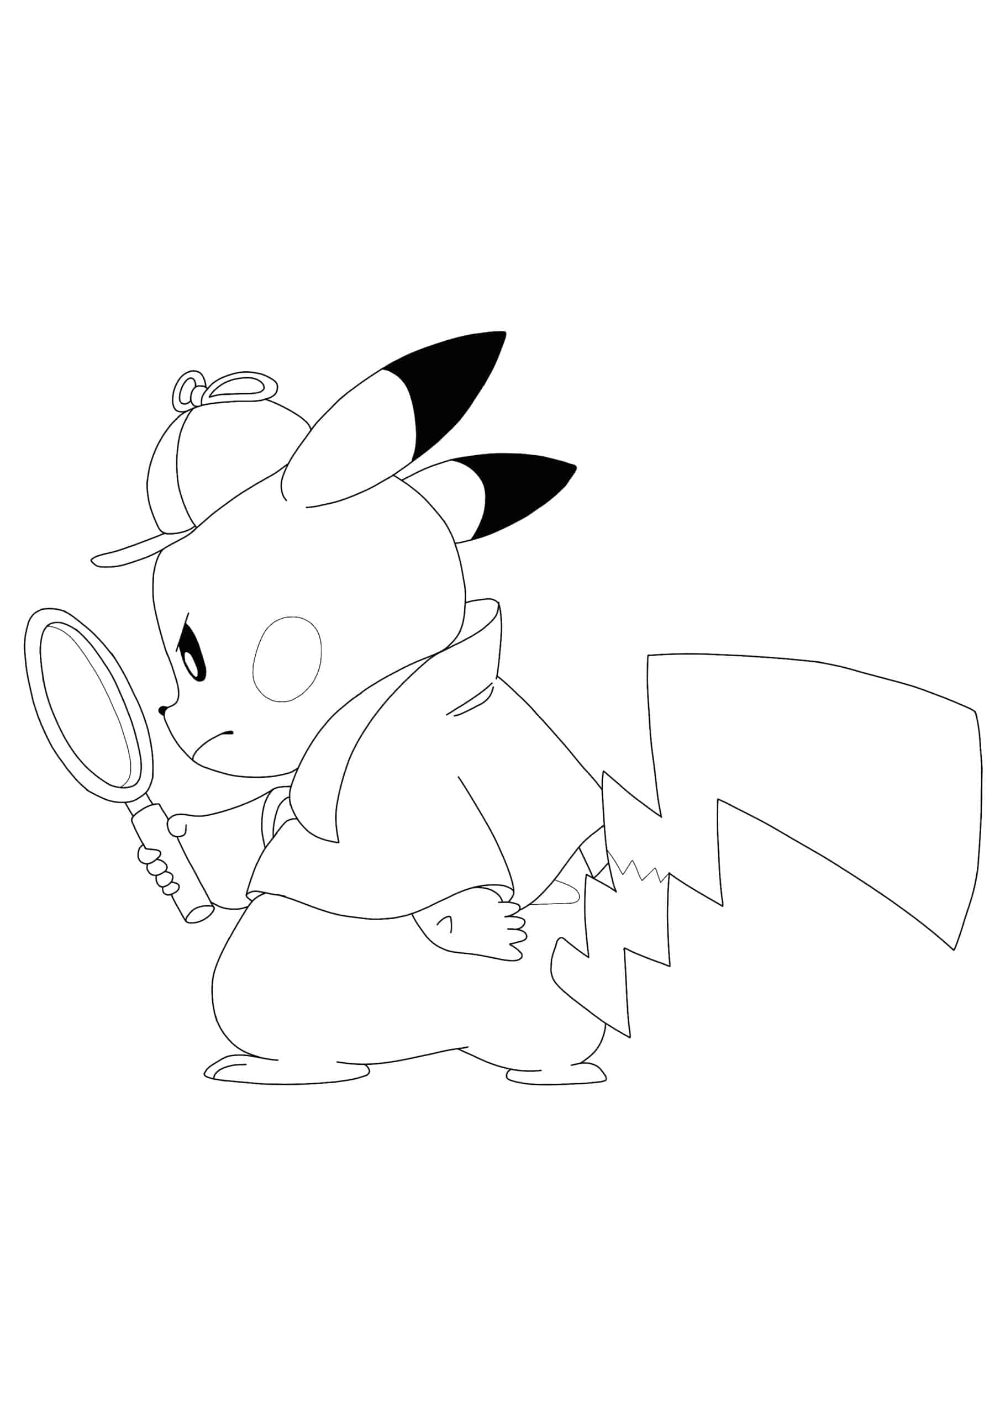 Detective Pikachu Coloring Pages - 6 Free Coloring Sheets (6060